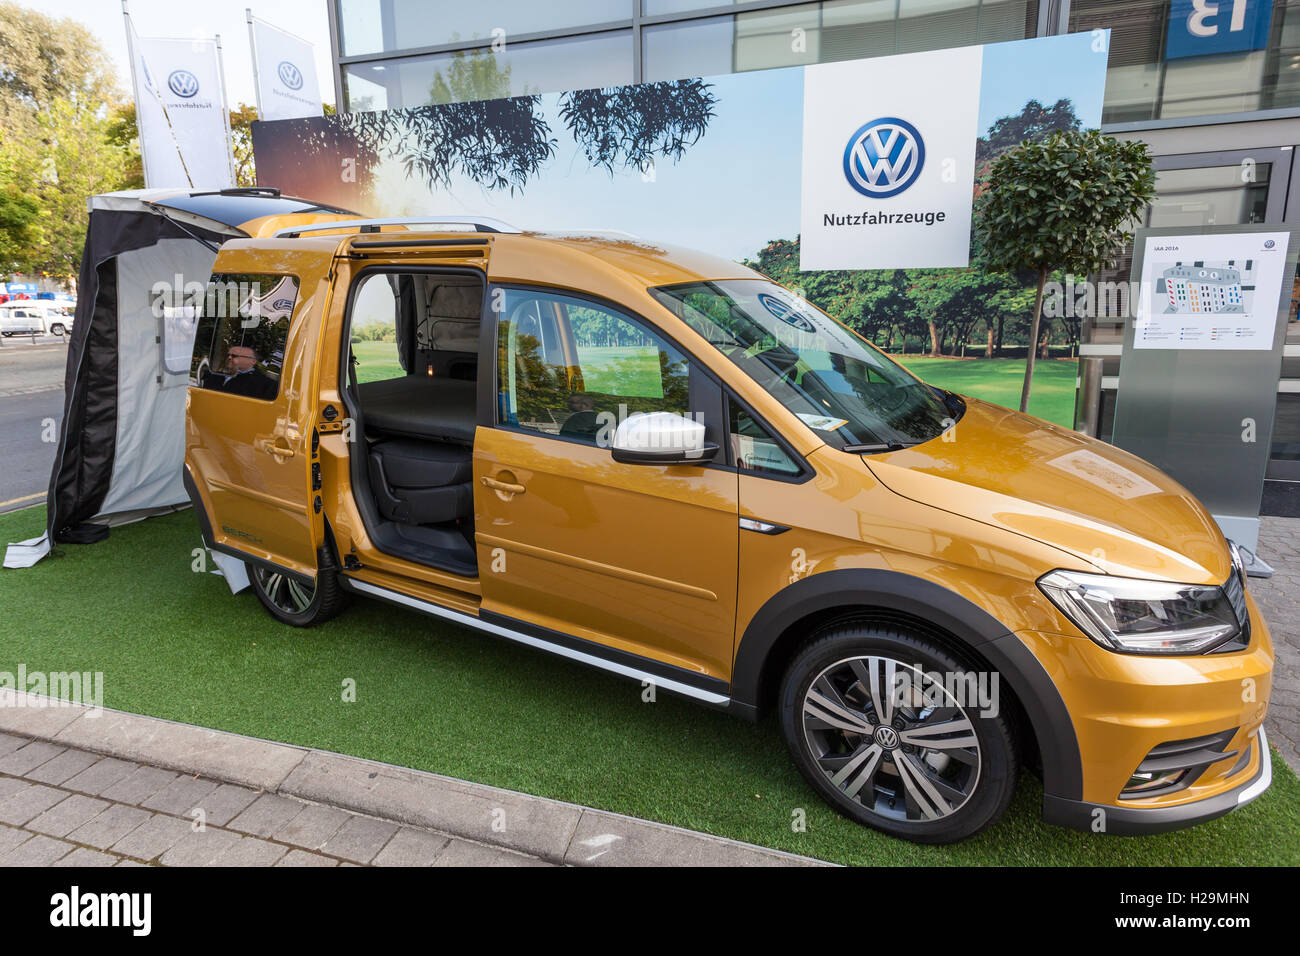 New Volkswagen Caddy Beach Camping Van Stock Photo